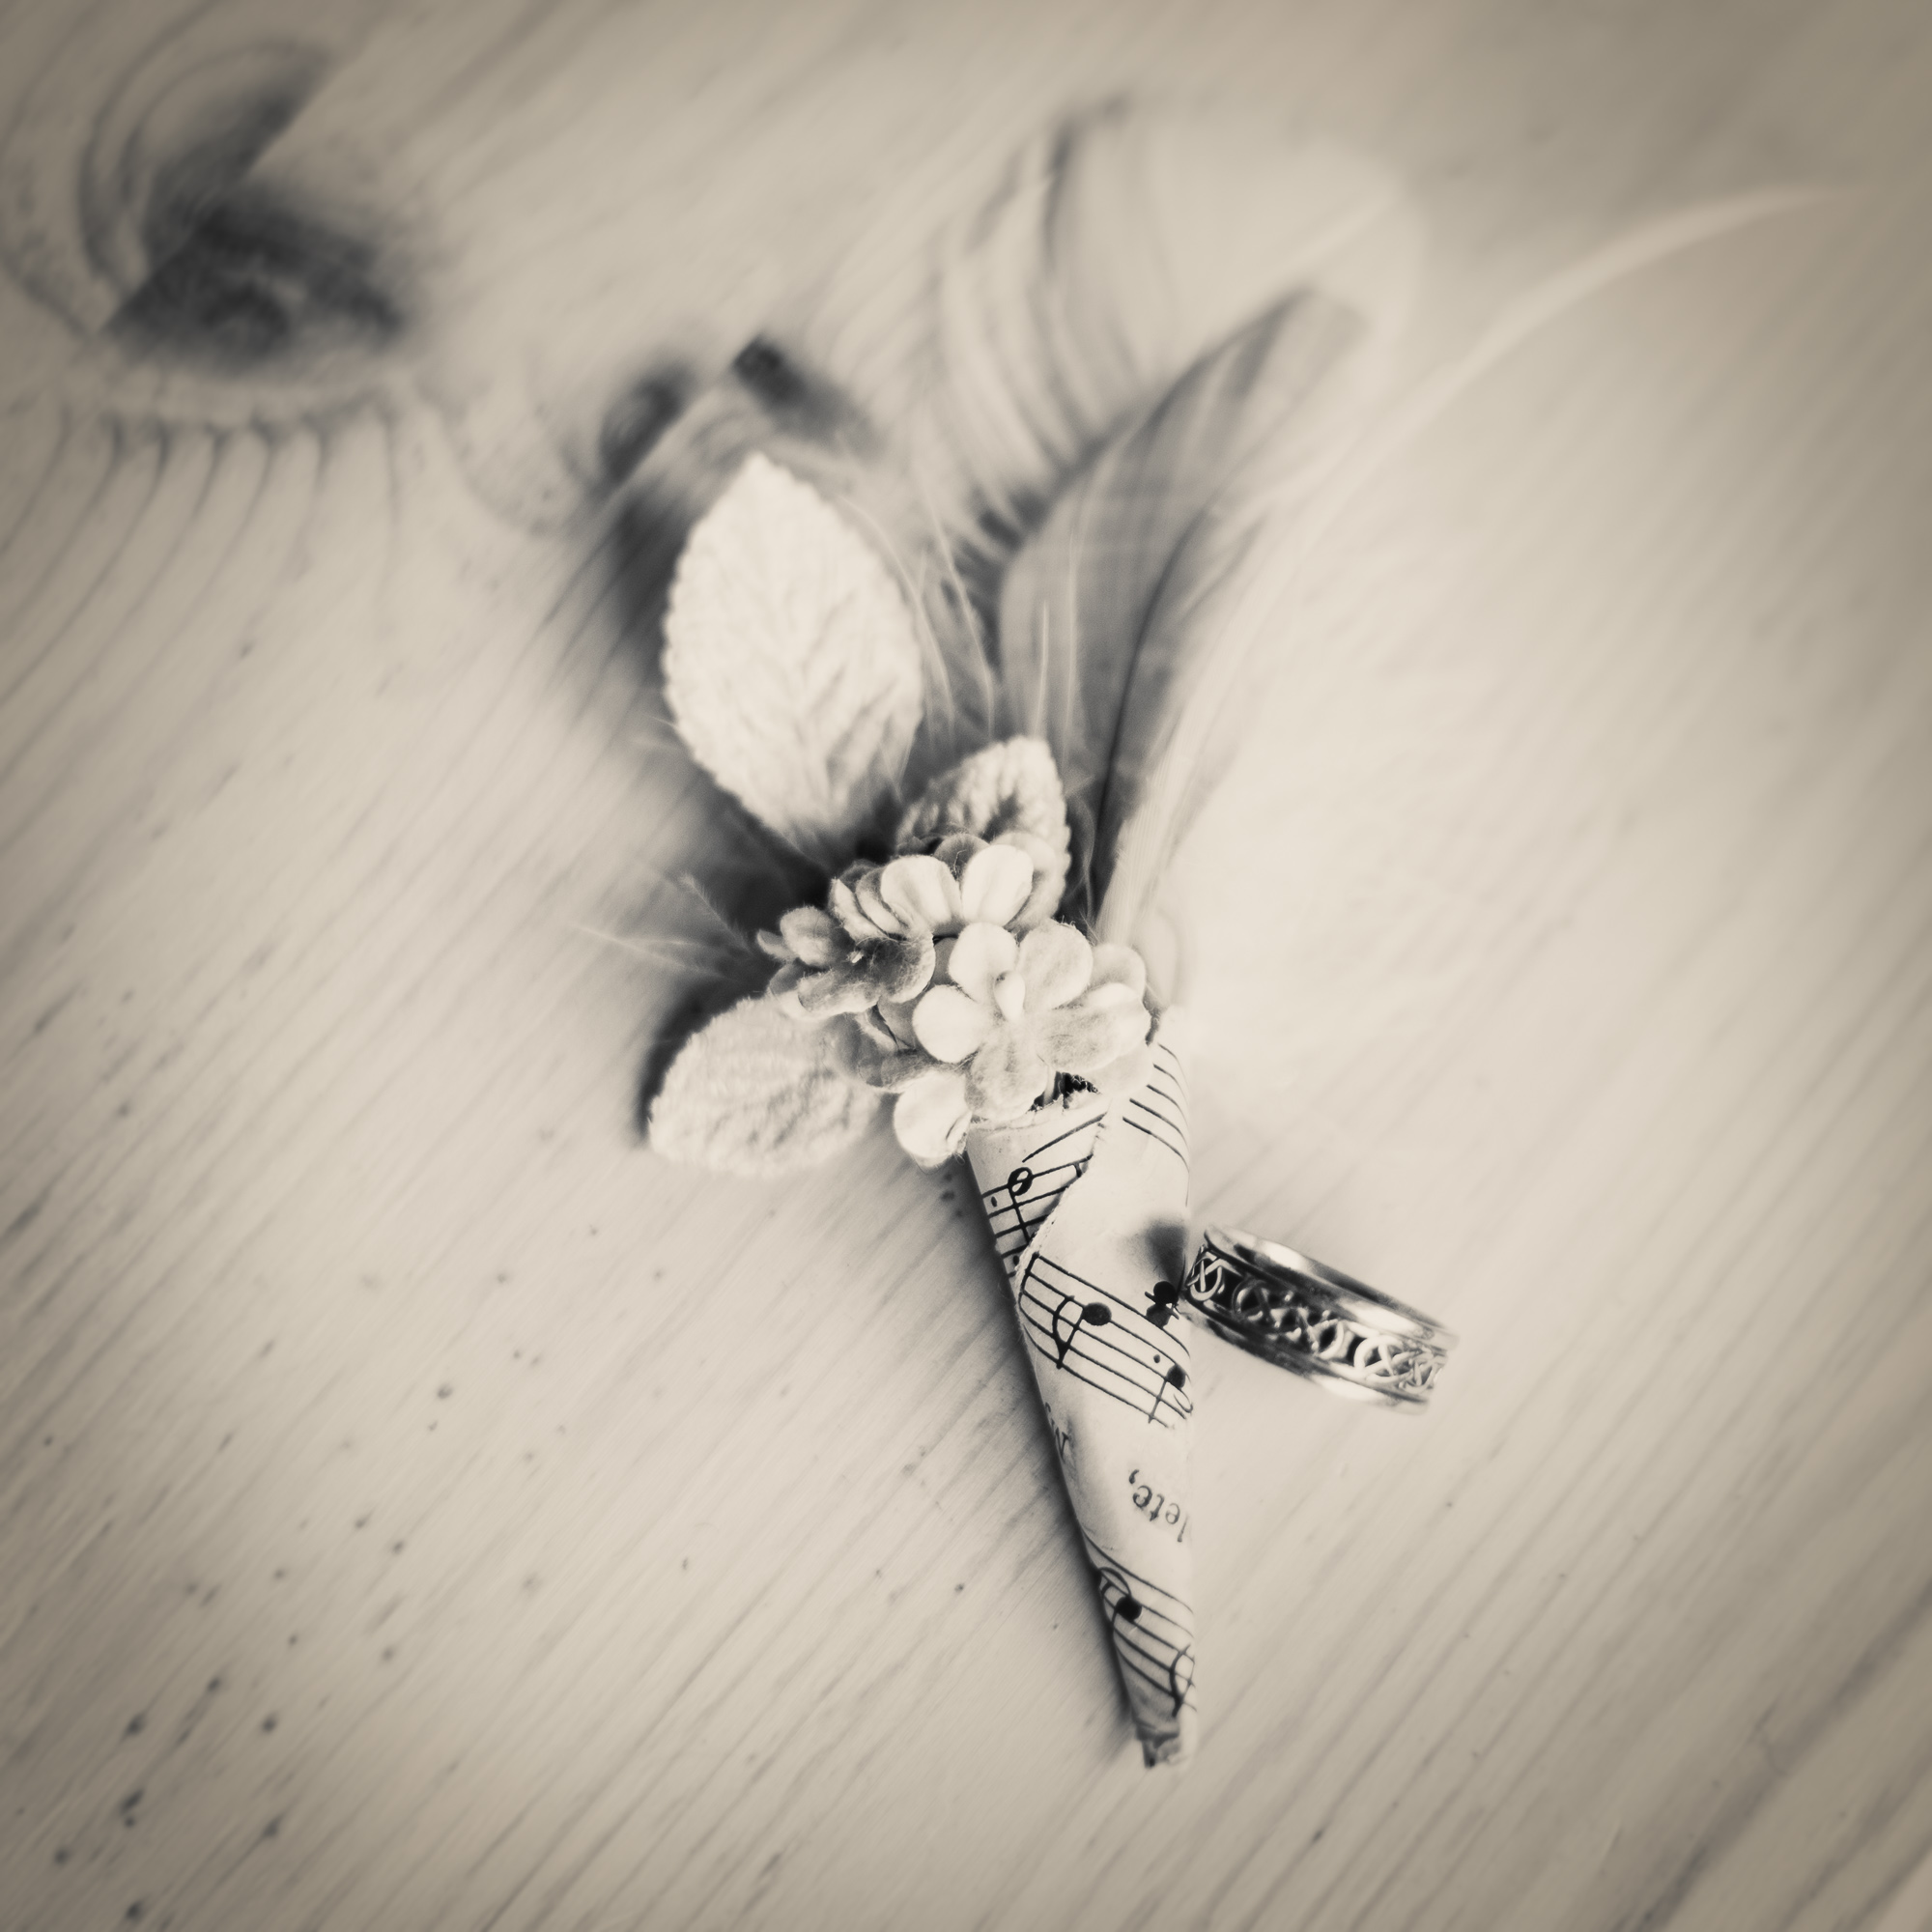 Copy of Groom's ring and vintage style boutonniere